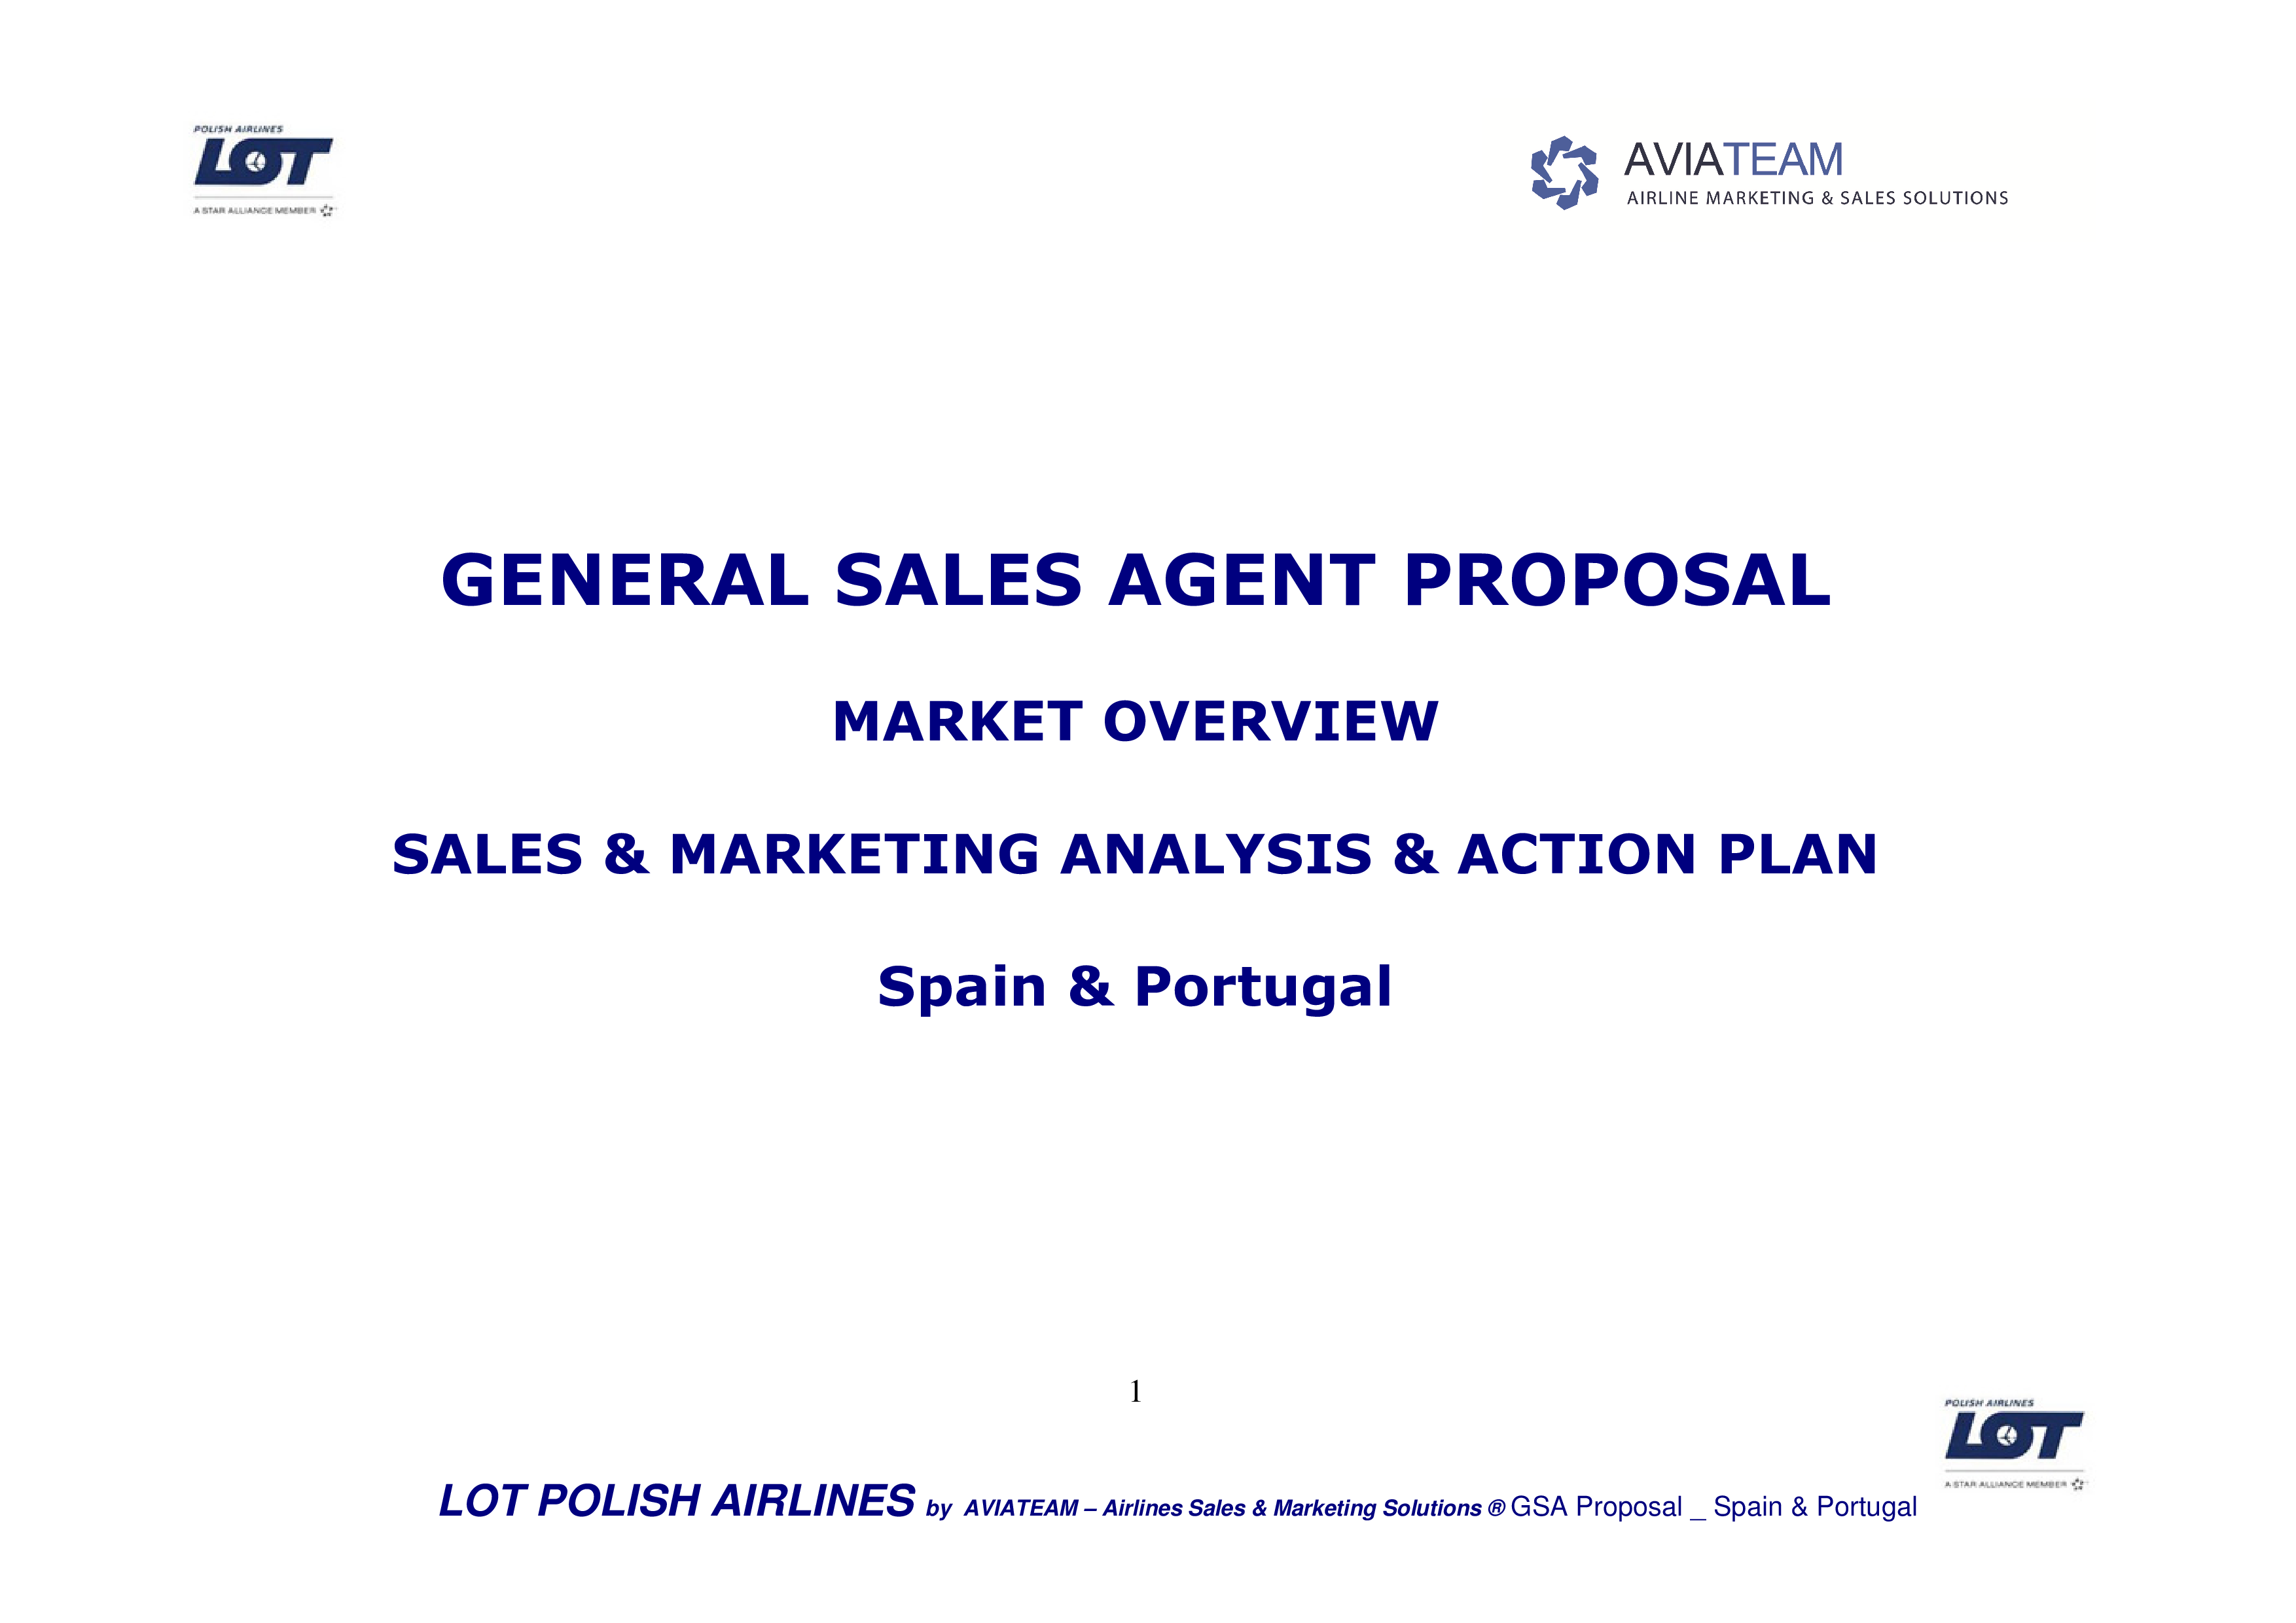 Free general sales agent business plan spain portugal templates general sales agent business plan spain portugal main image download template friedricerecipe Gallery